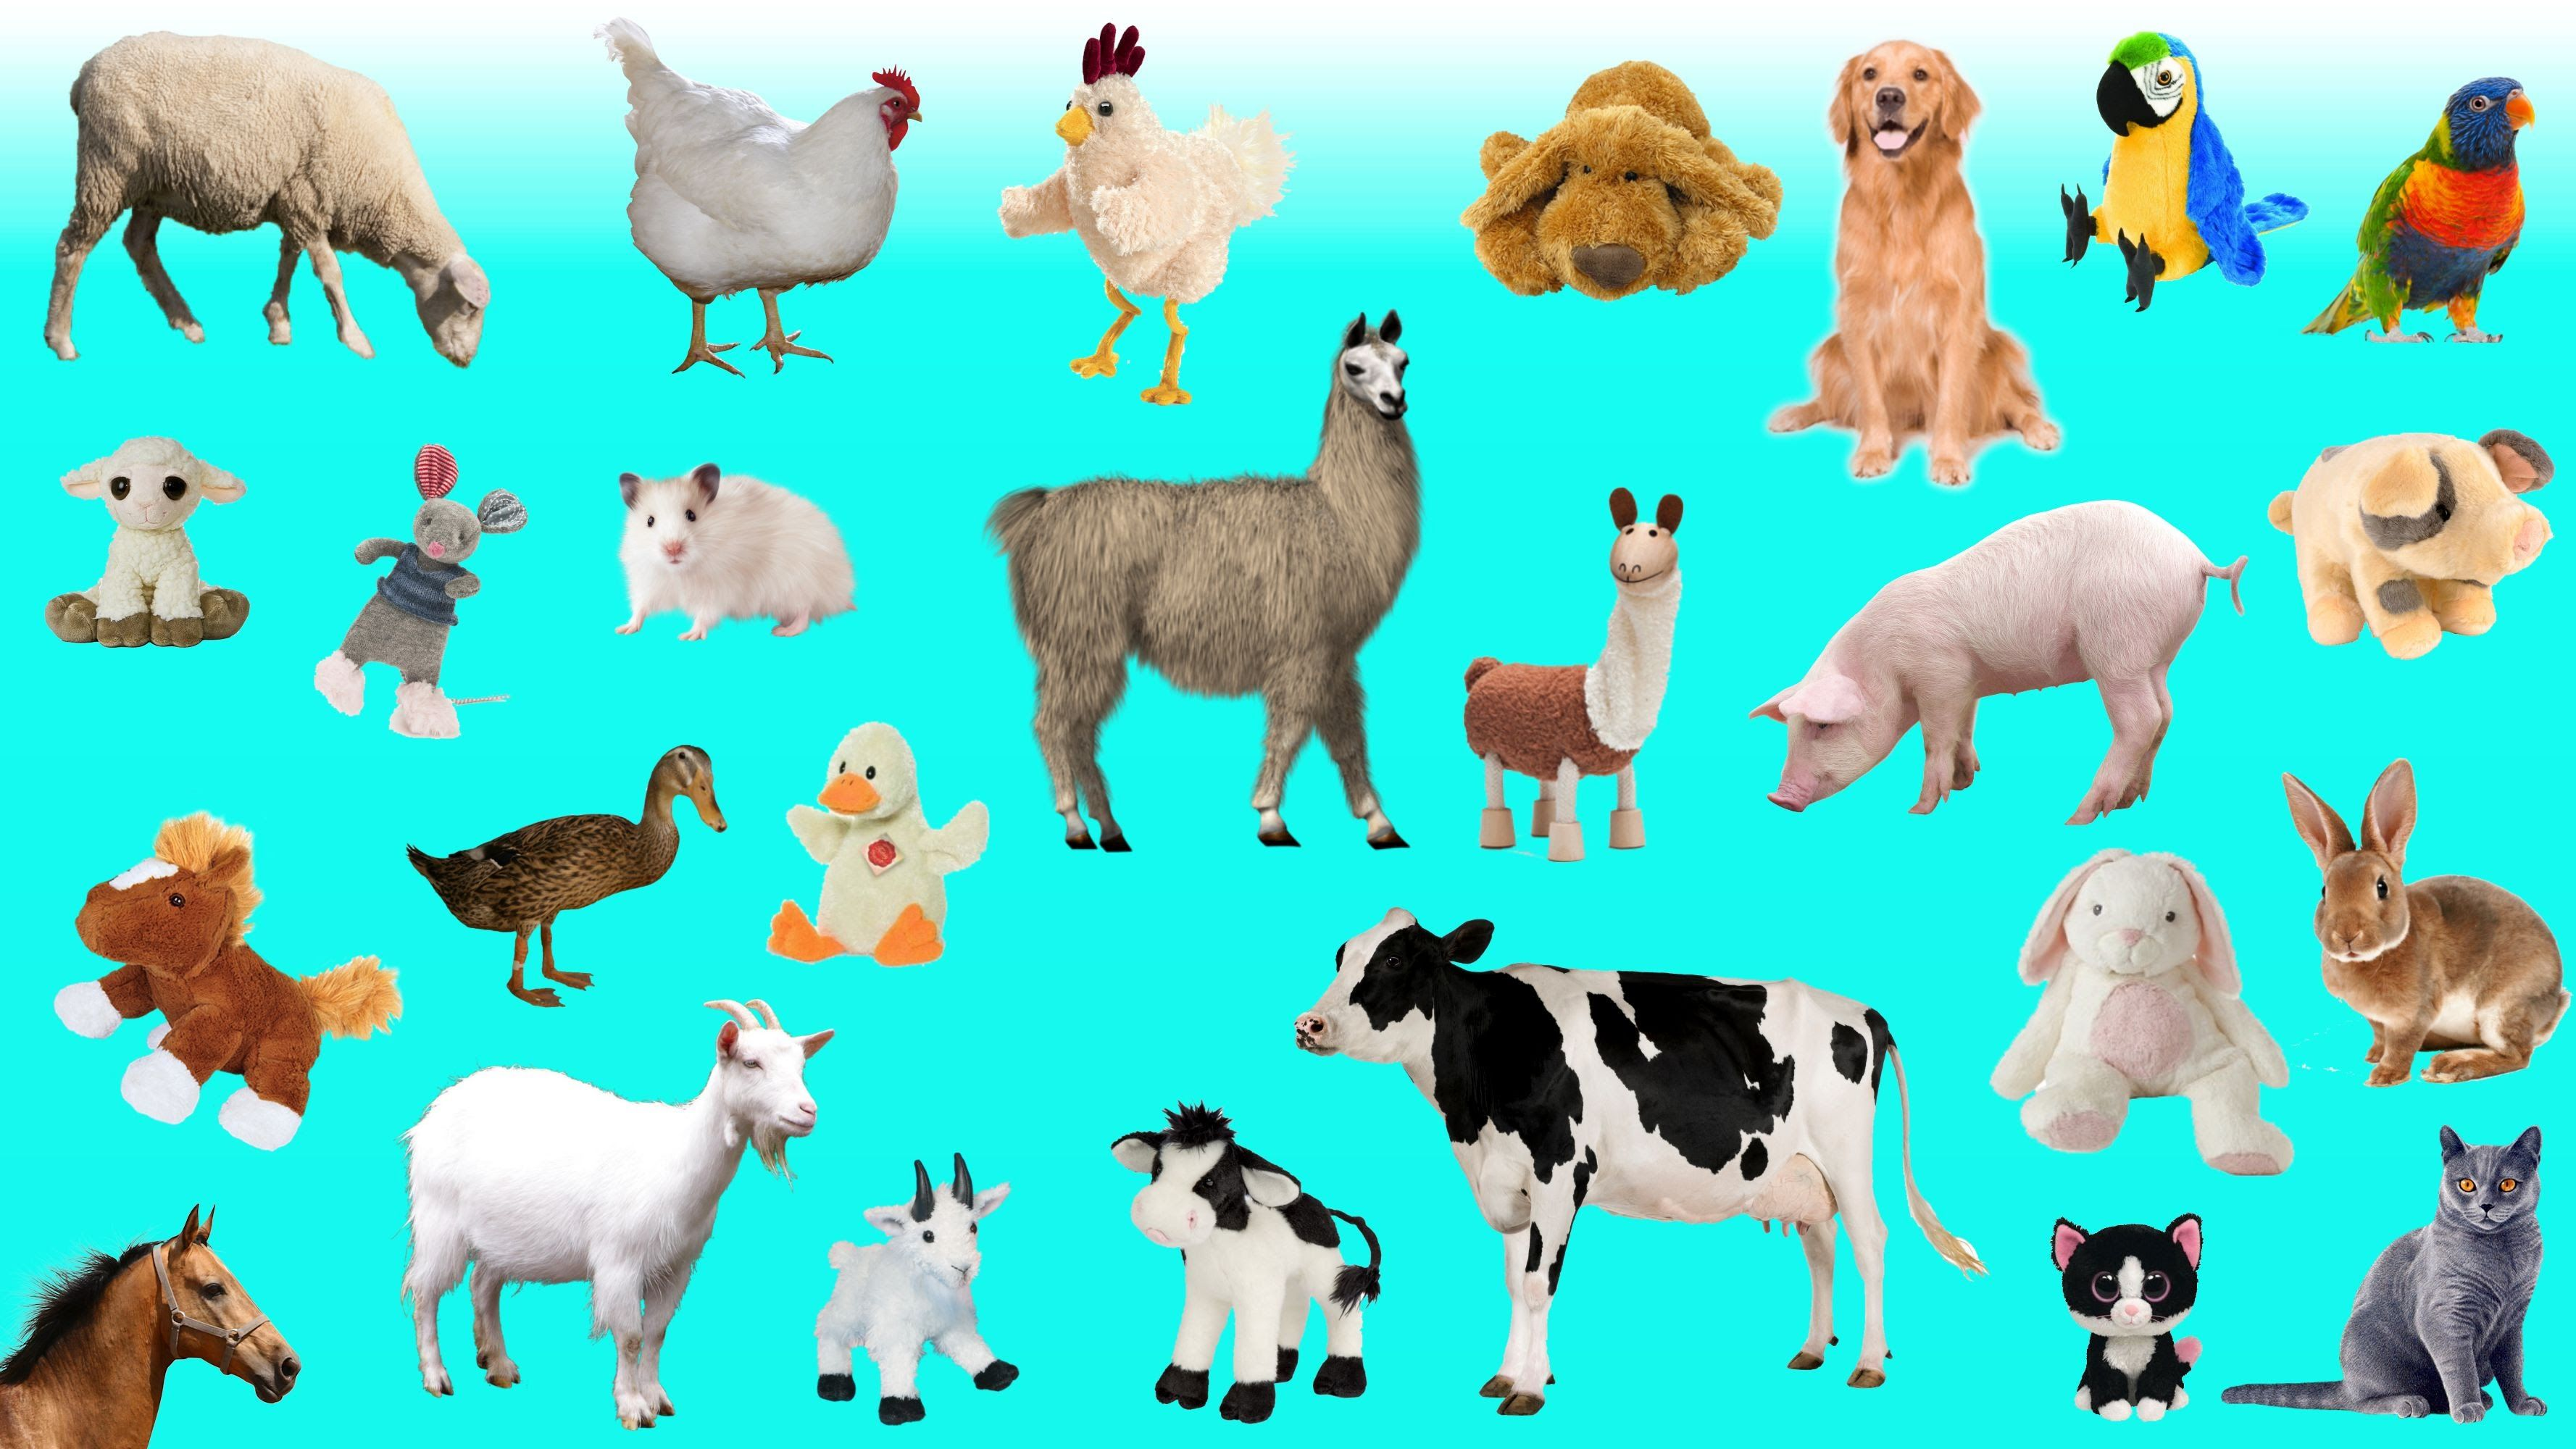 learn domestic farm animals names and sounds for toddlers kids children - Animal Pictures For Toddlers